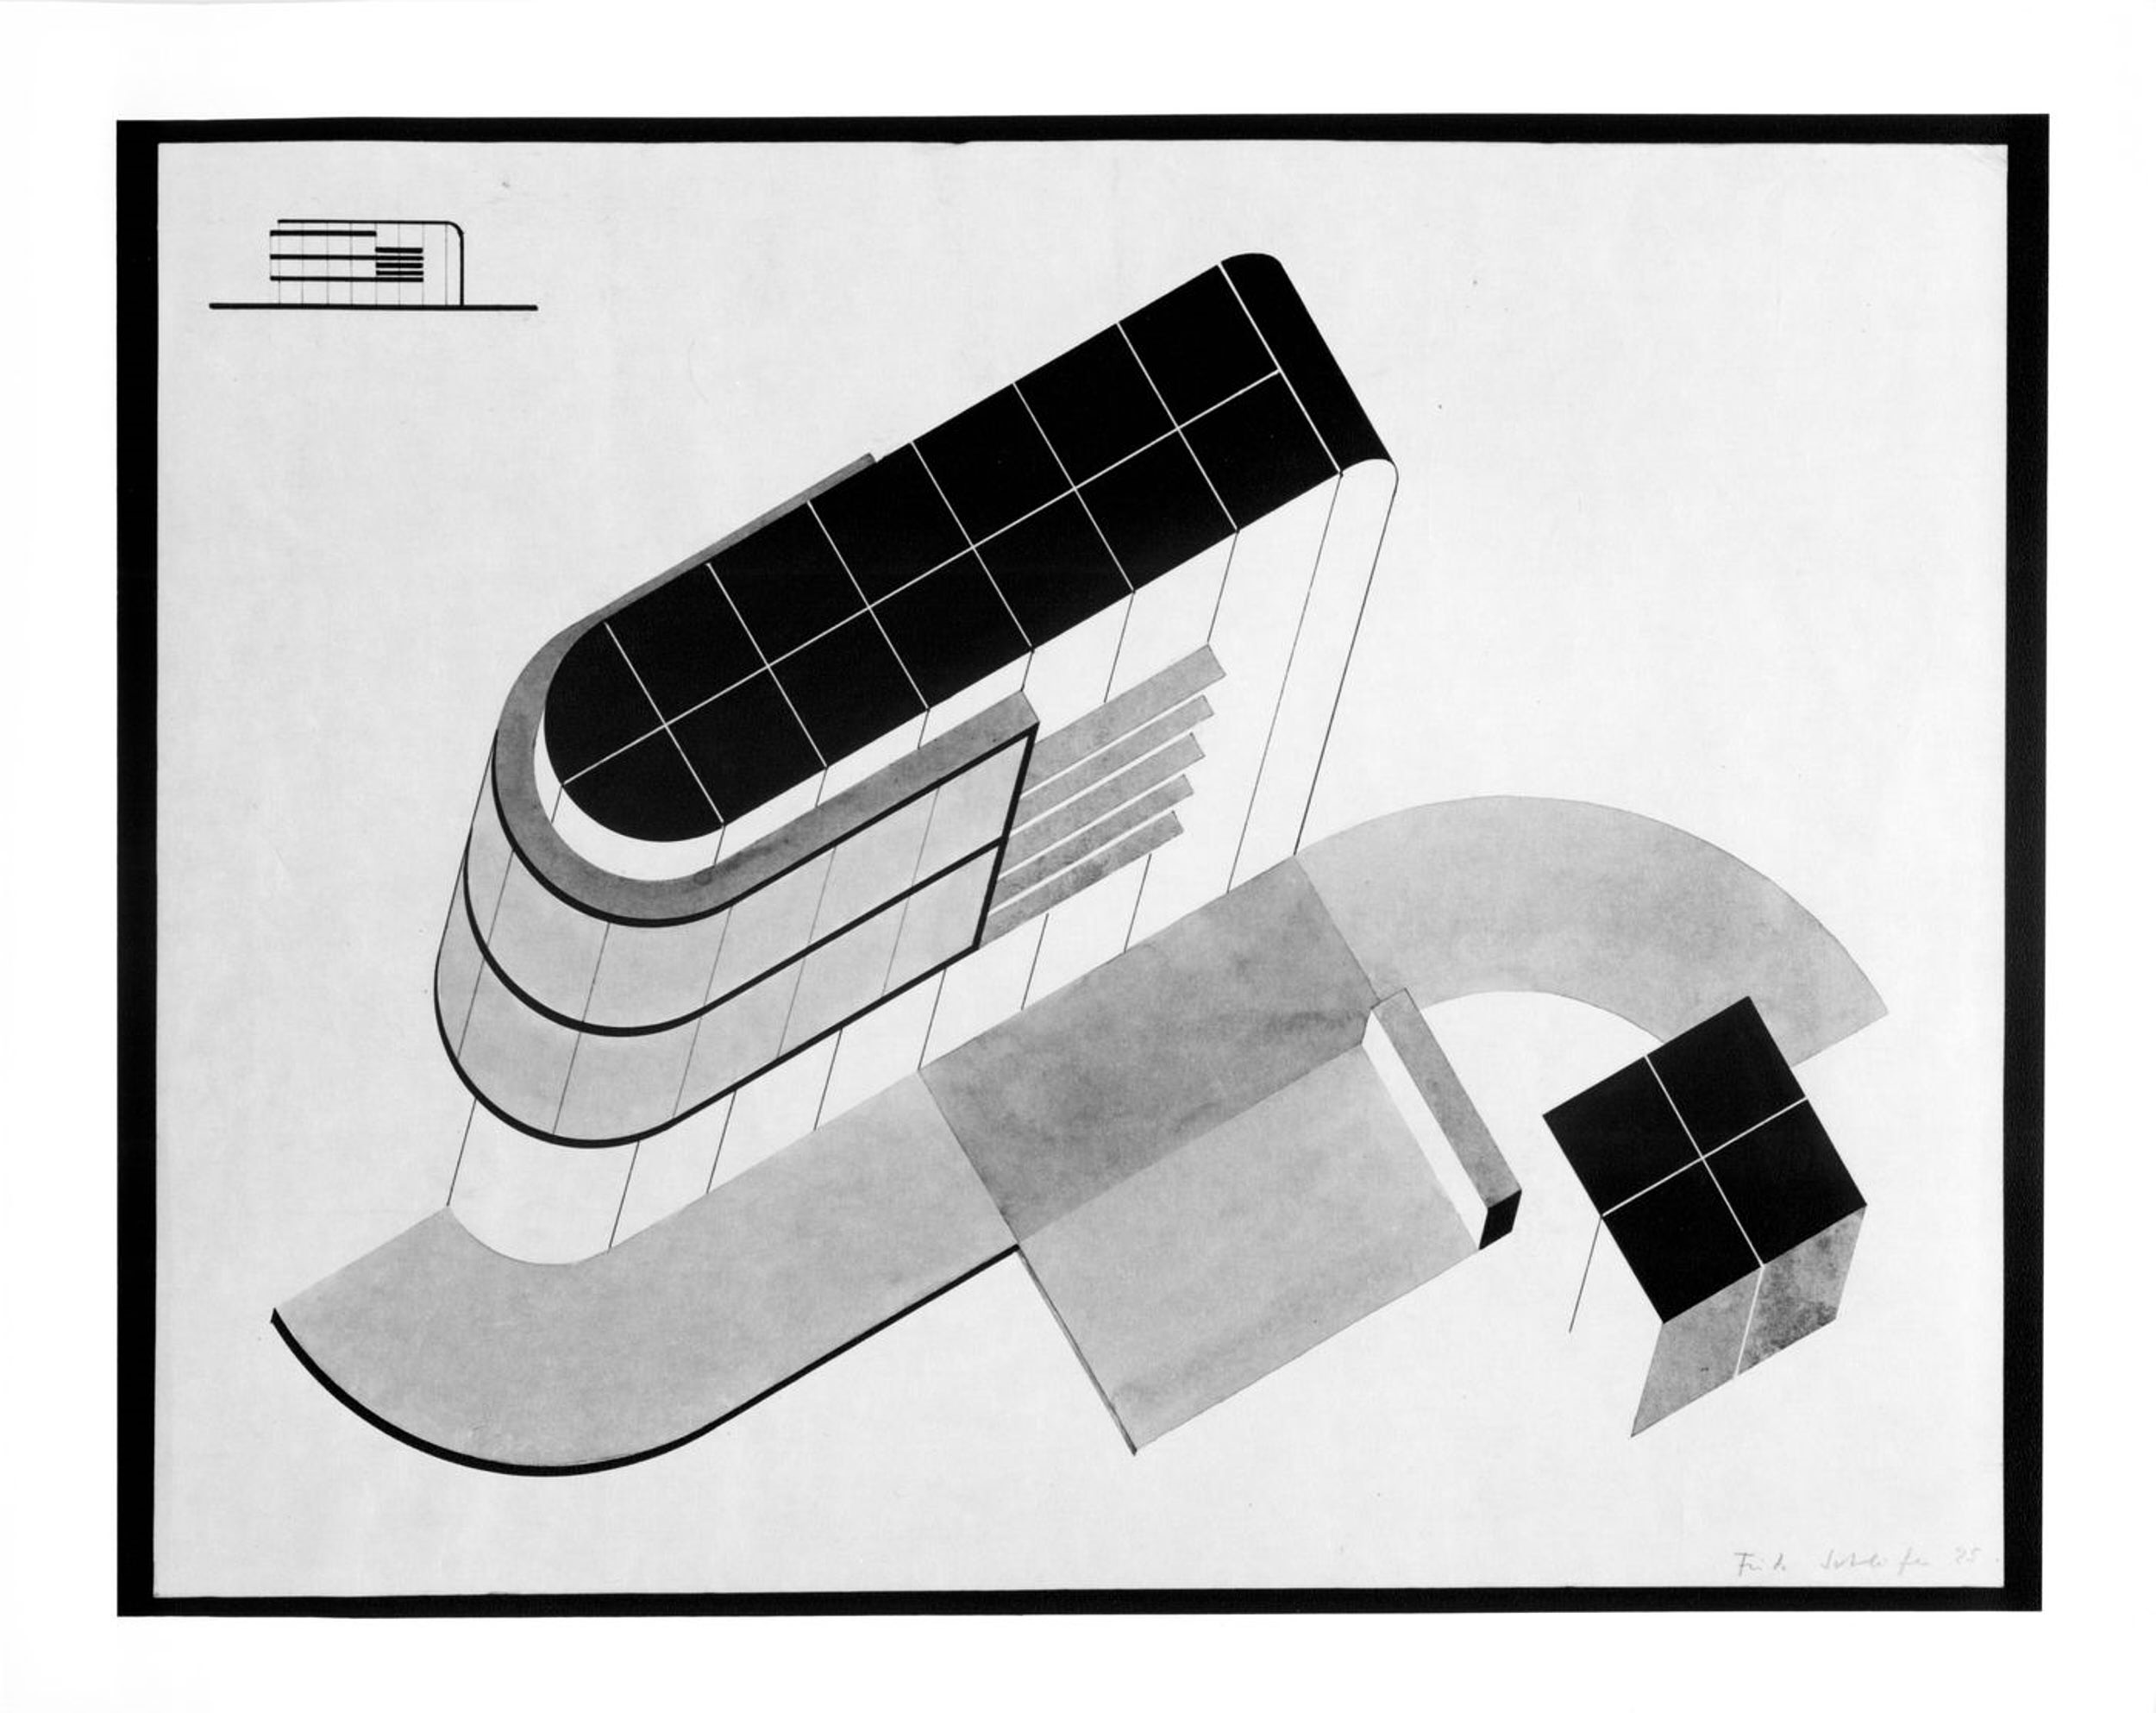 Axonometric drawing and section for a student project at the Bauhaus — Collection Centre Canadien d'Architecture/Canadian Centre for Architecture, Montréal